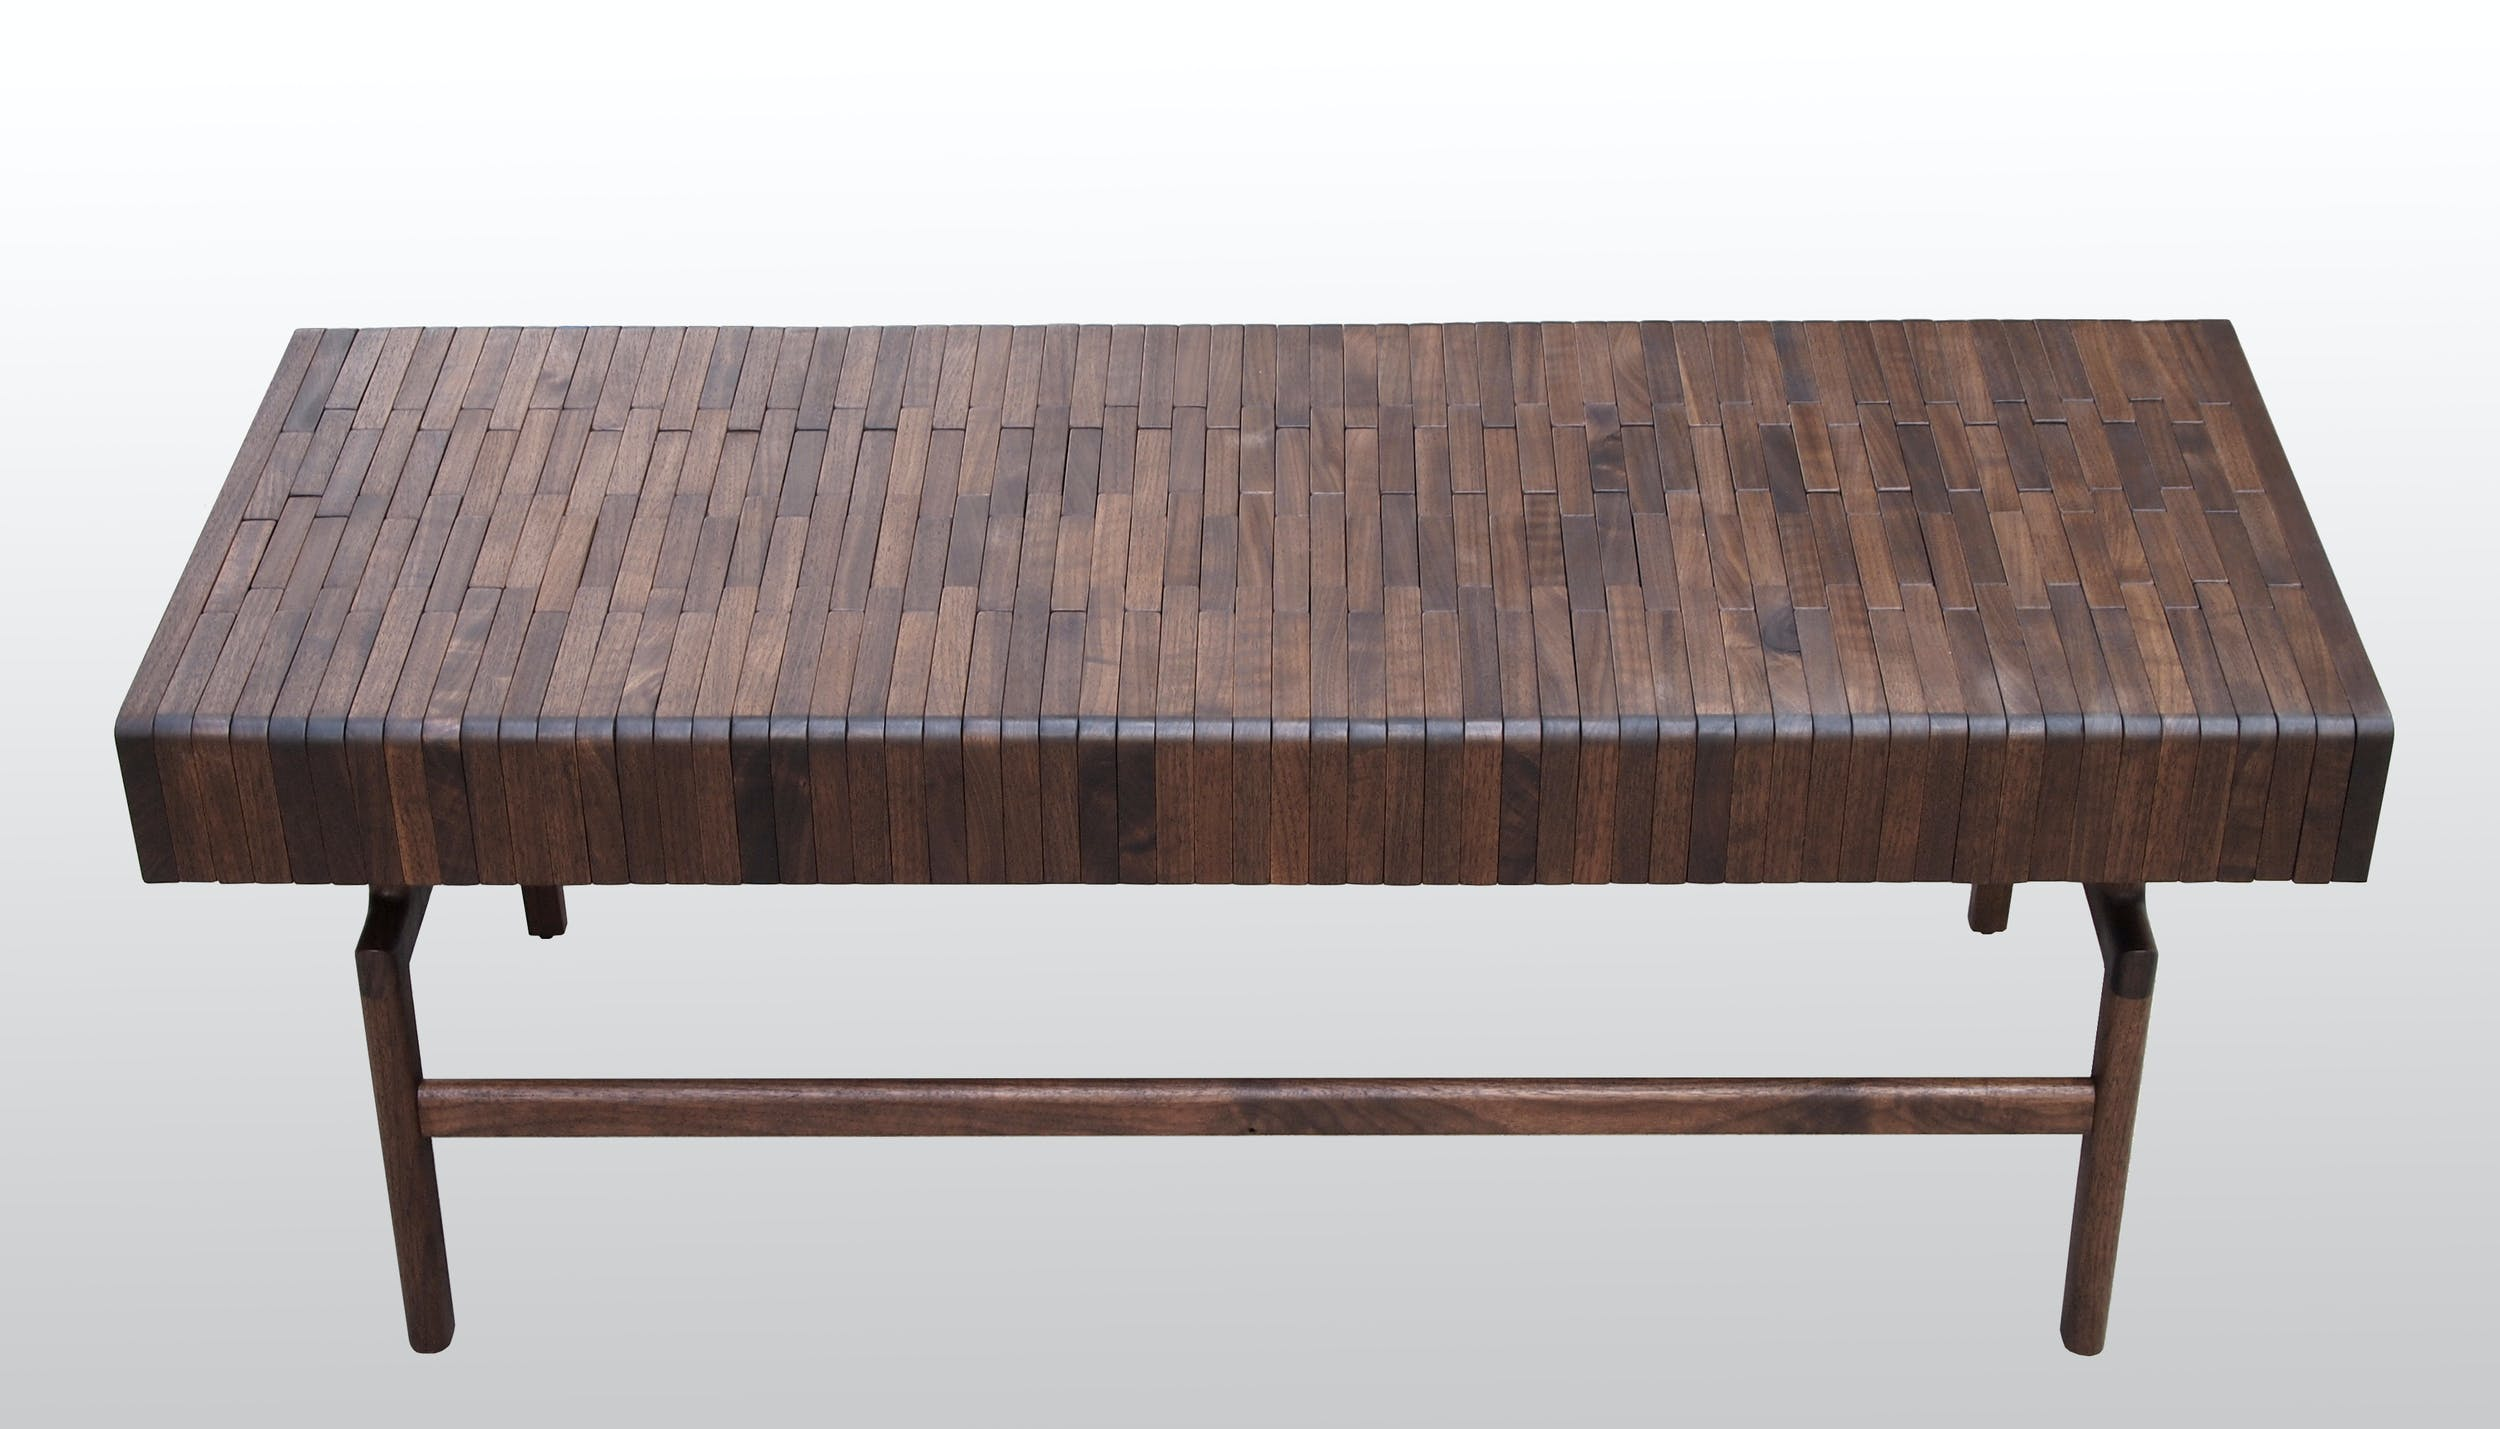 4 Oiled Bench